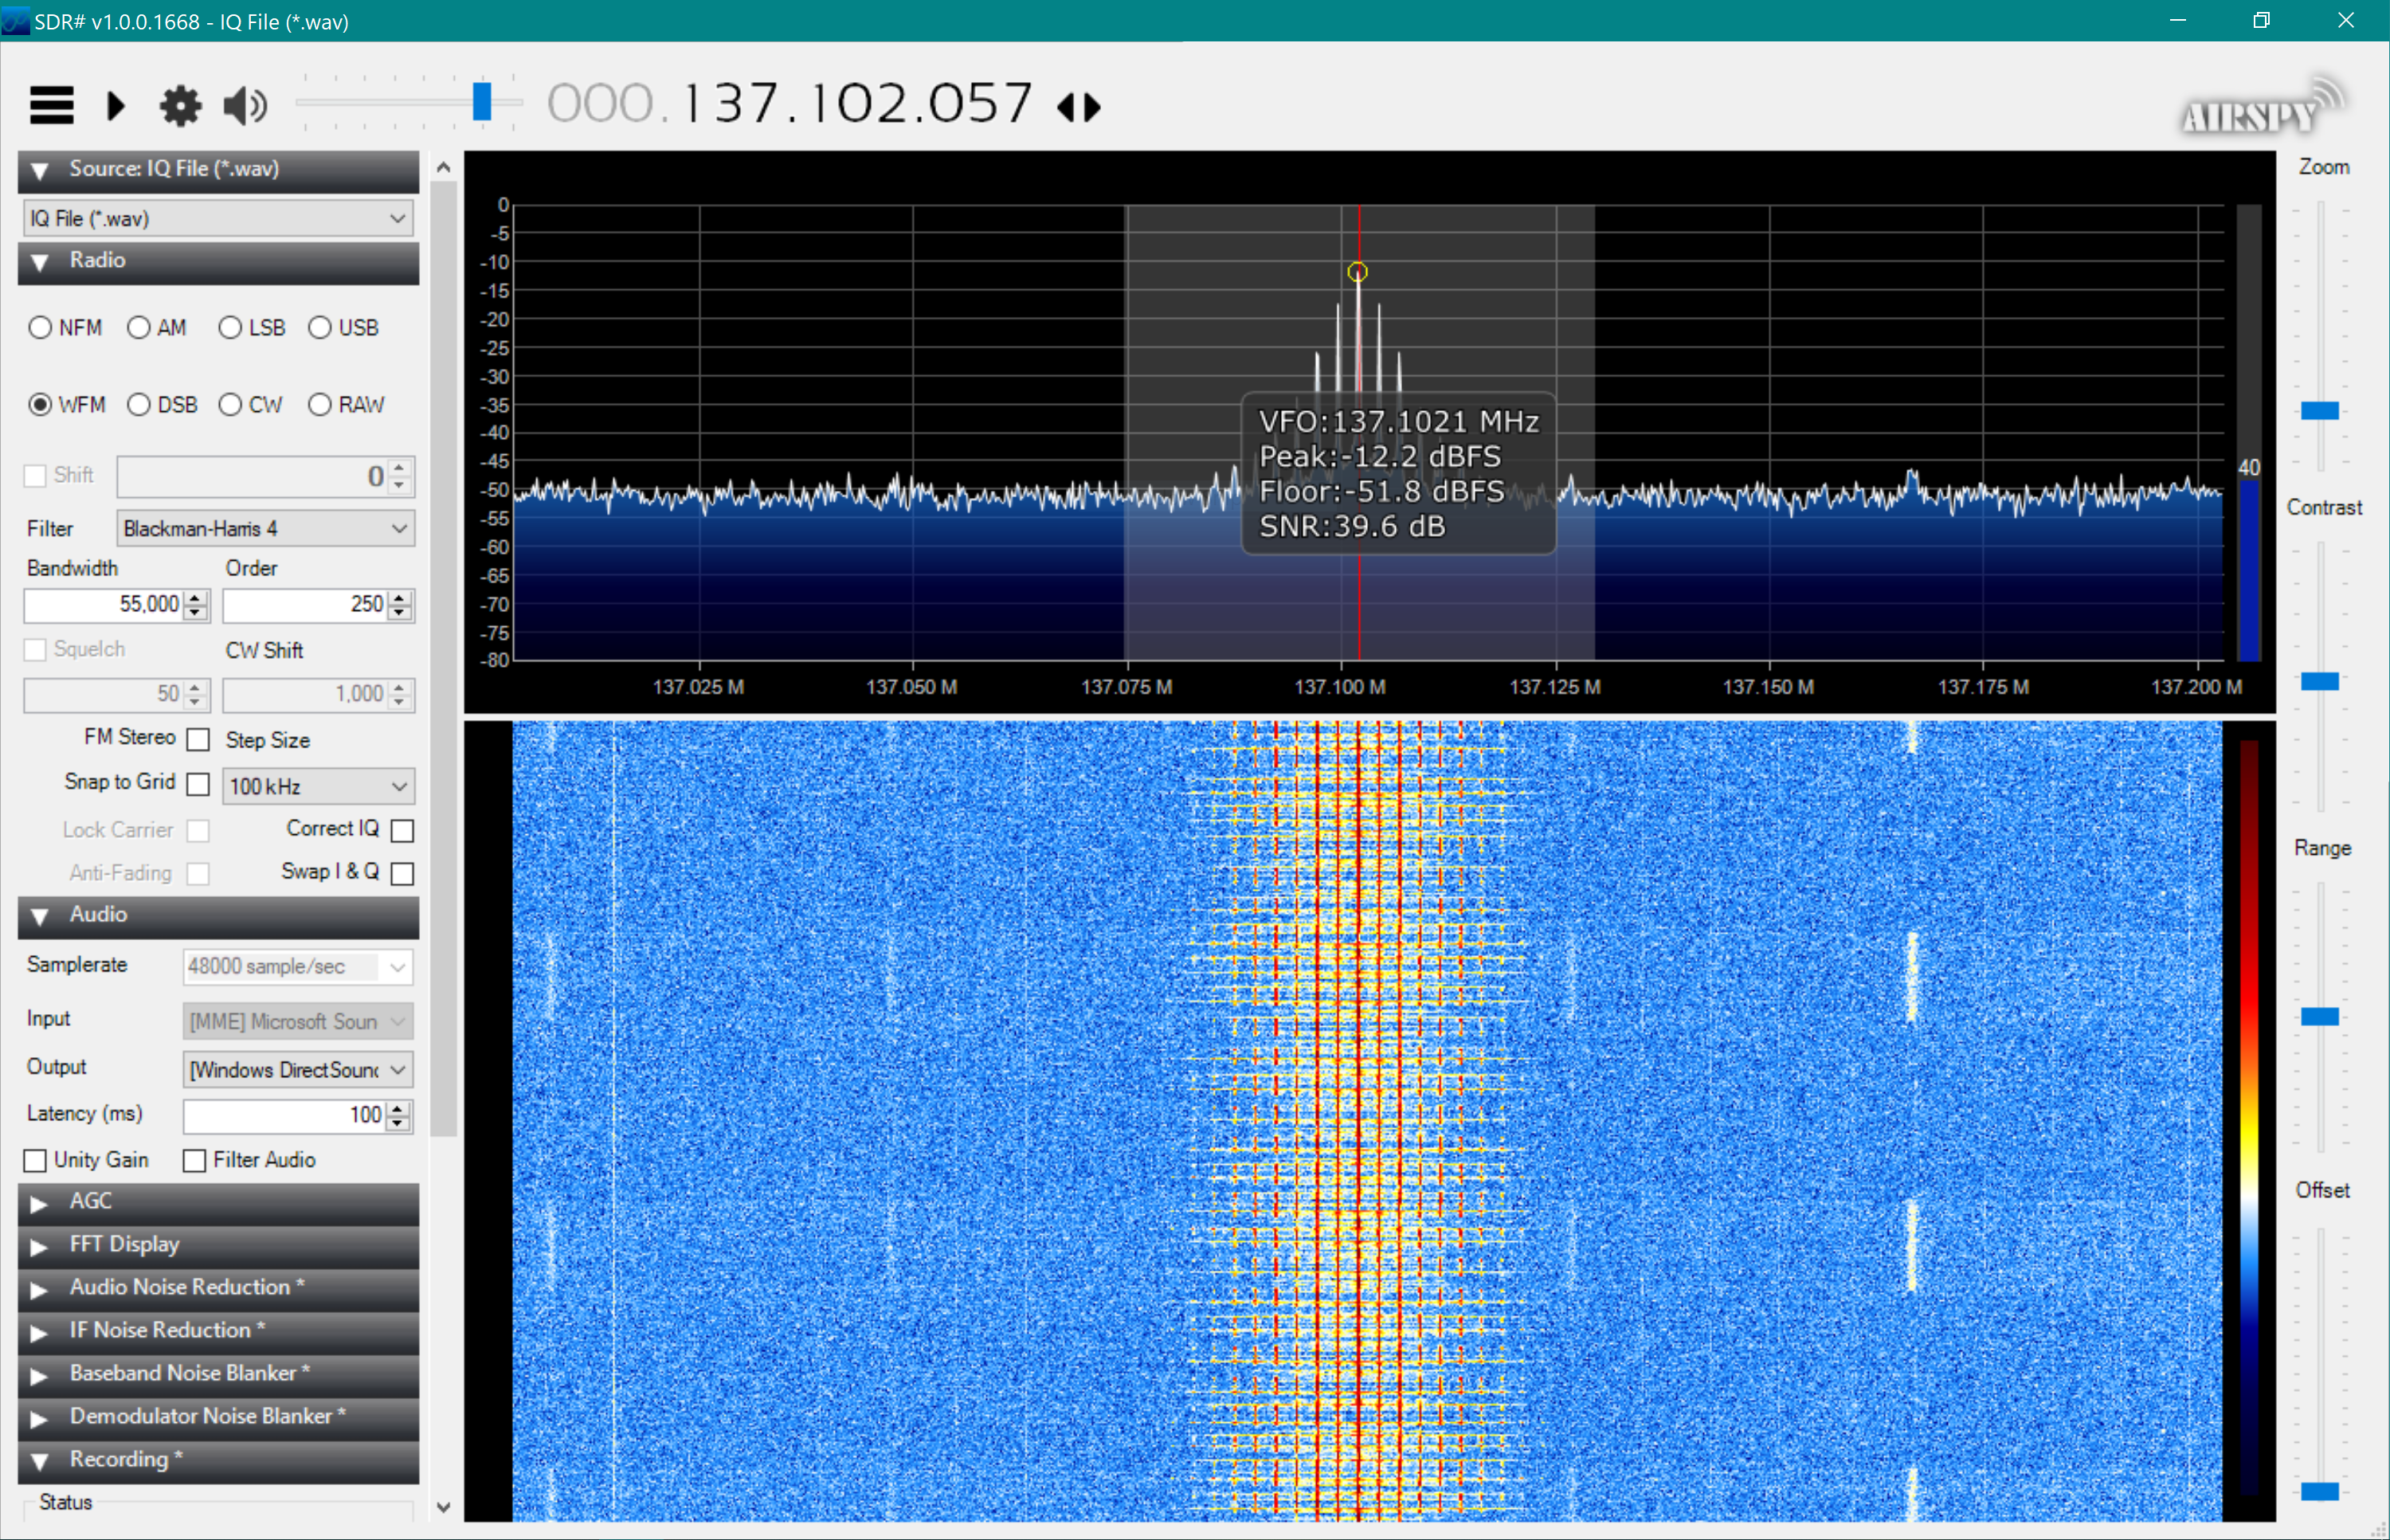 SDR sharp configured and showing download